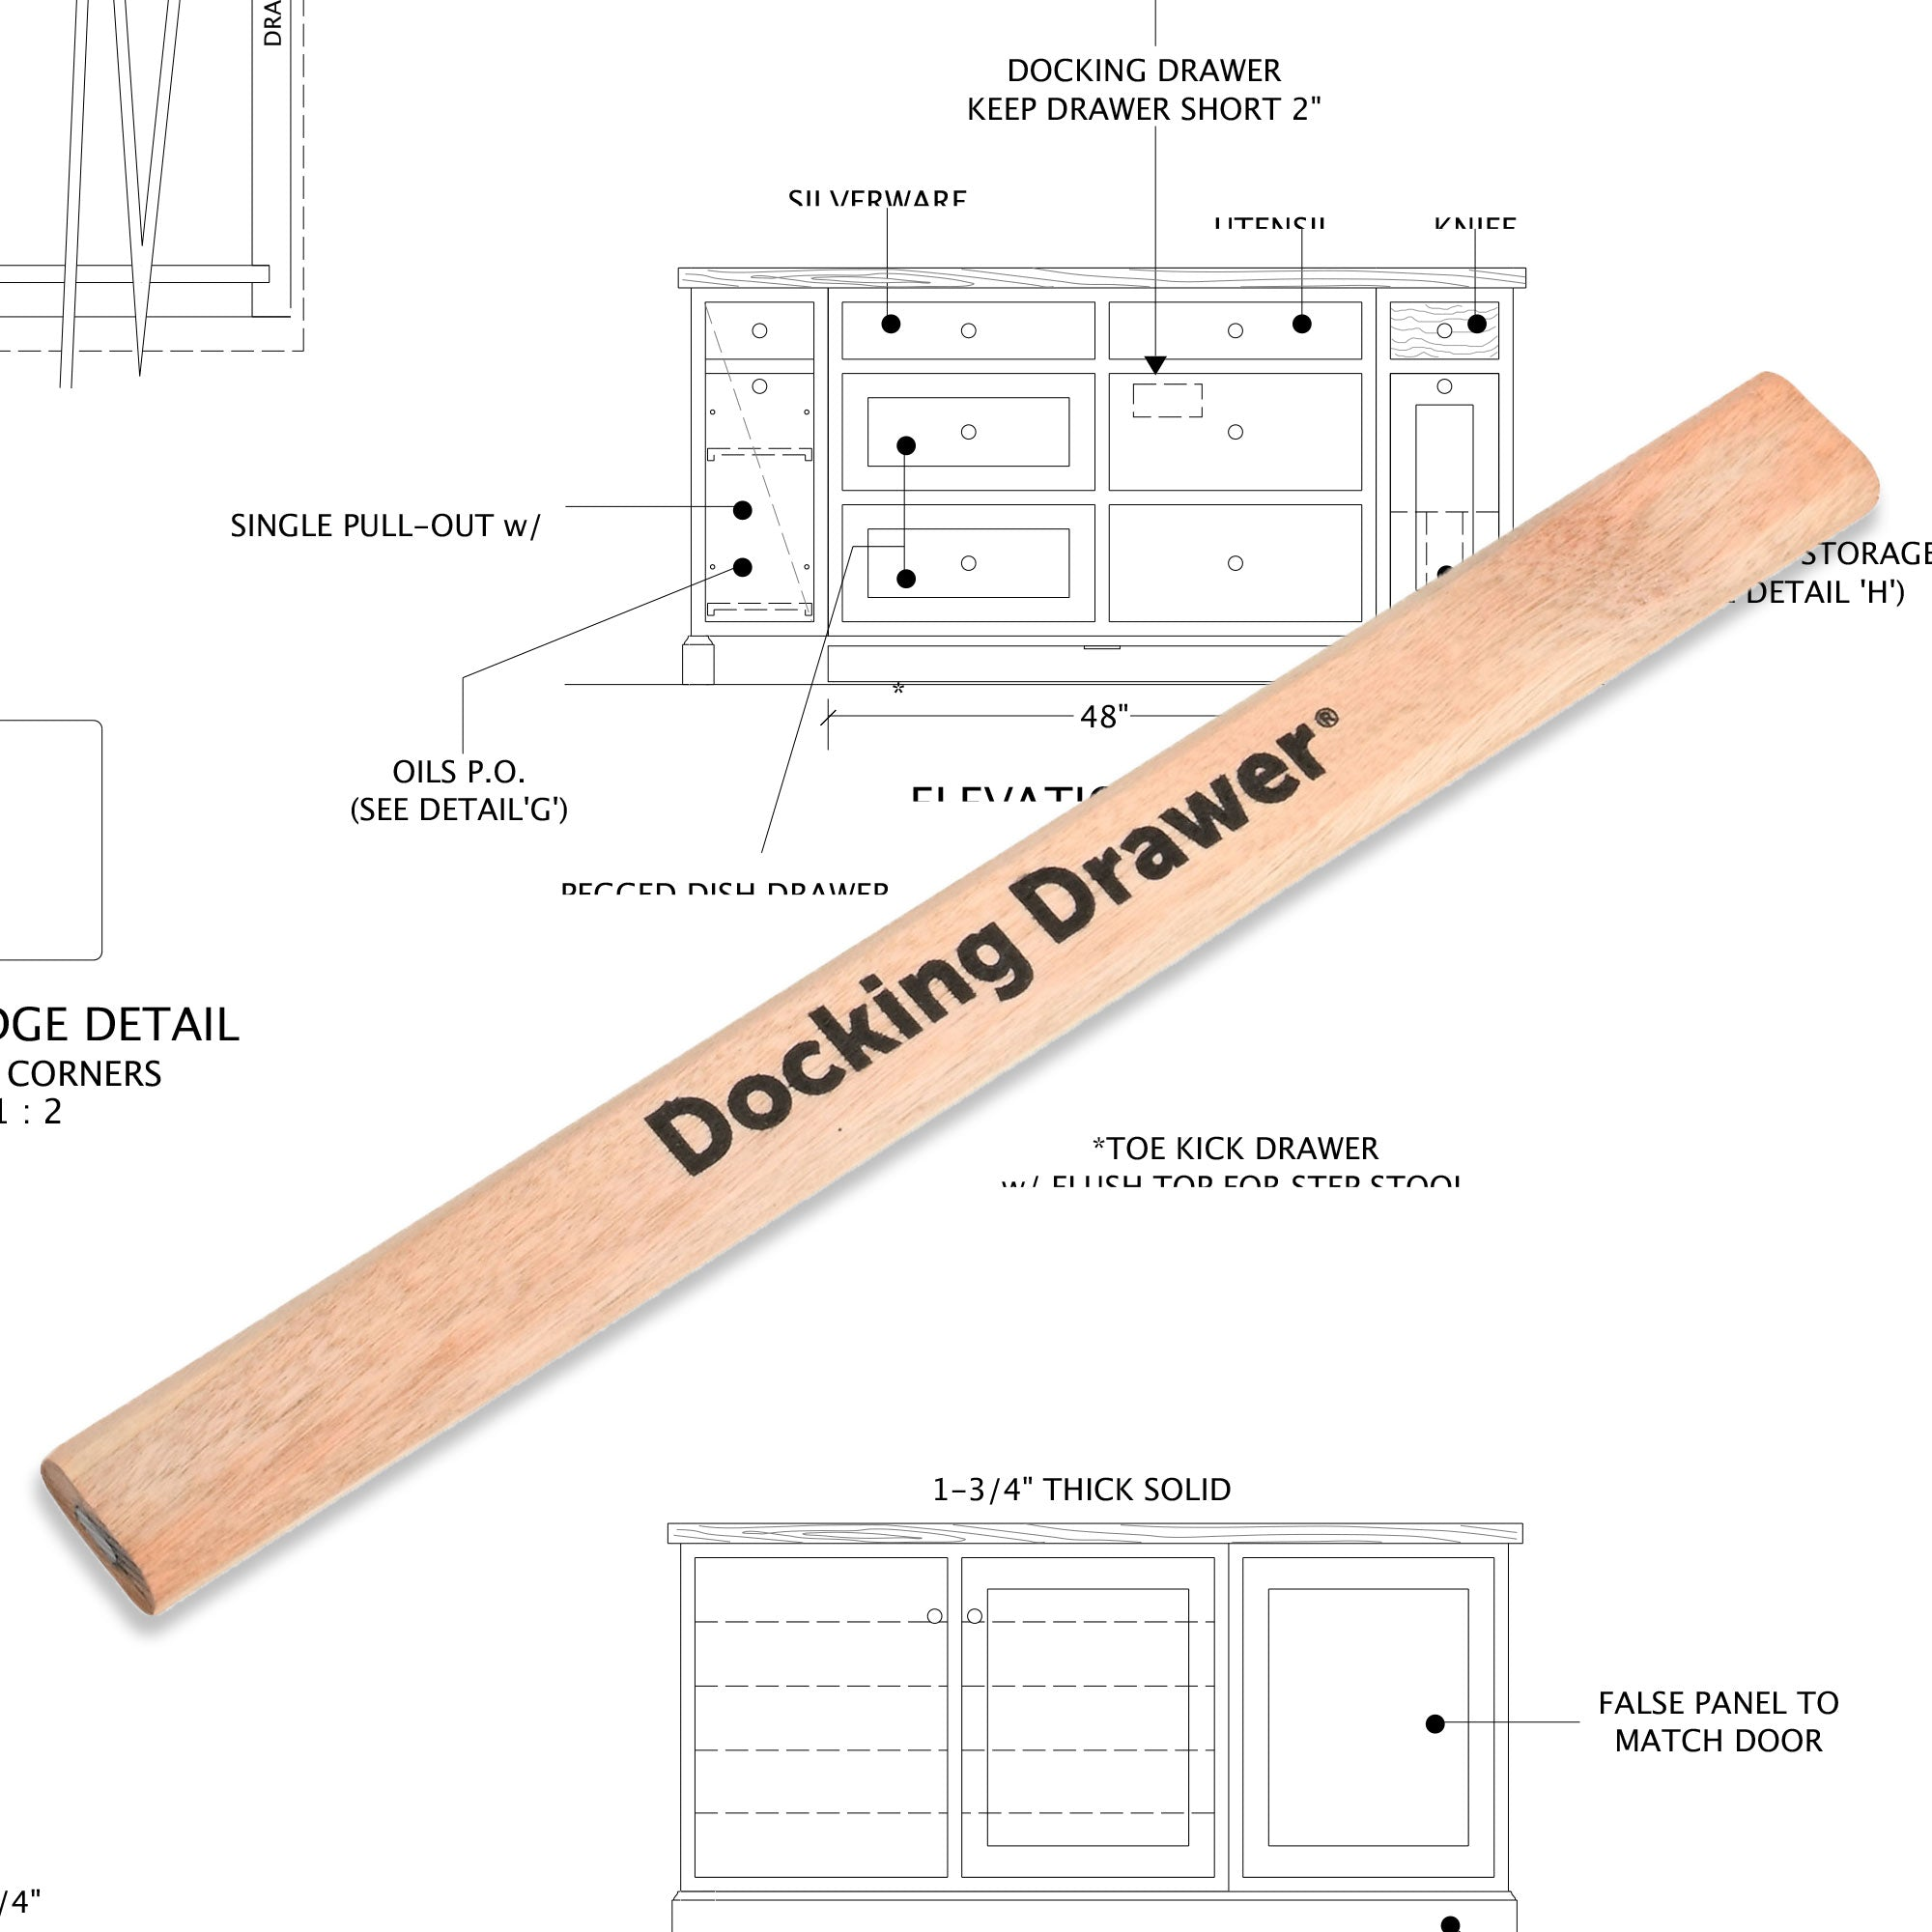 Docking Drawer Pencil